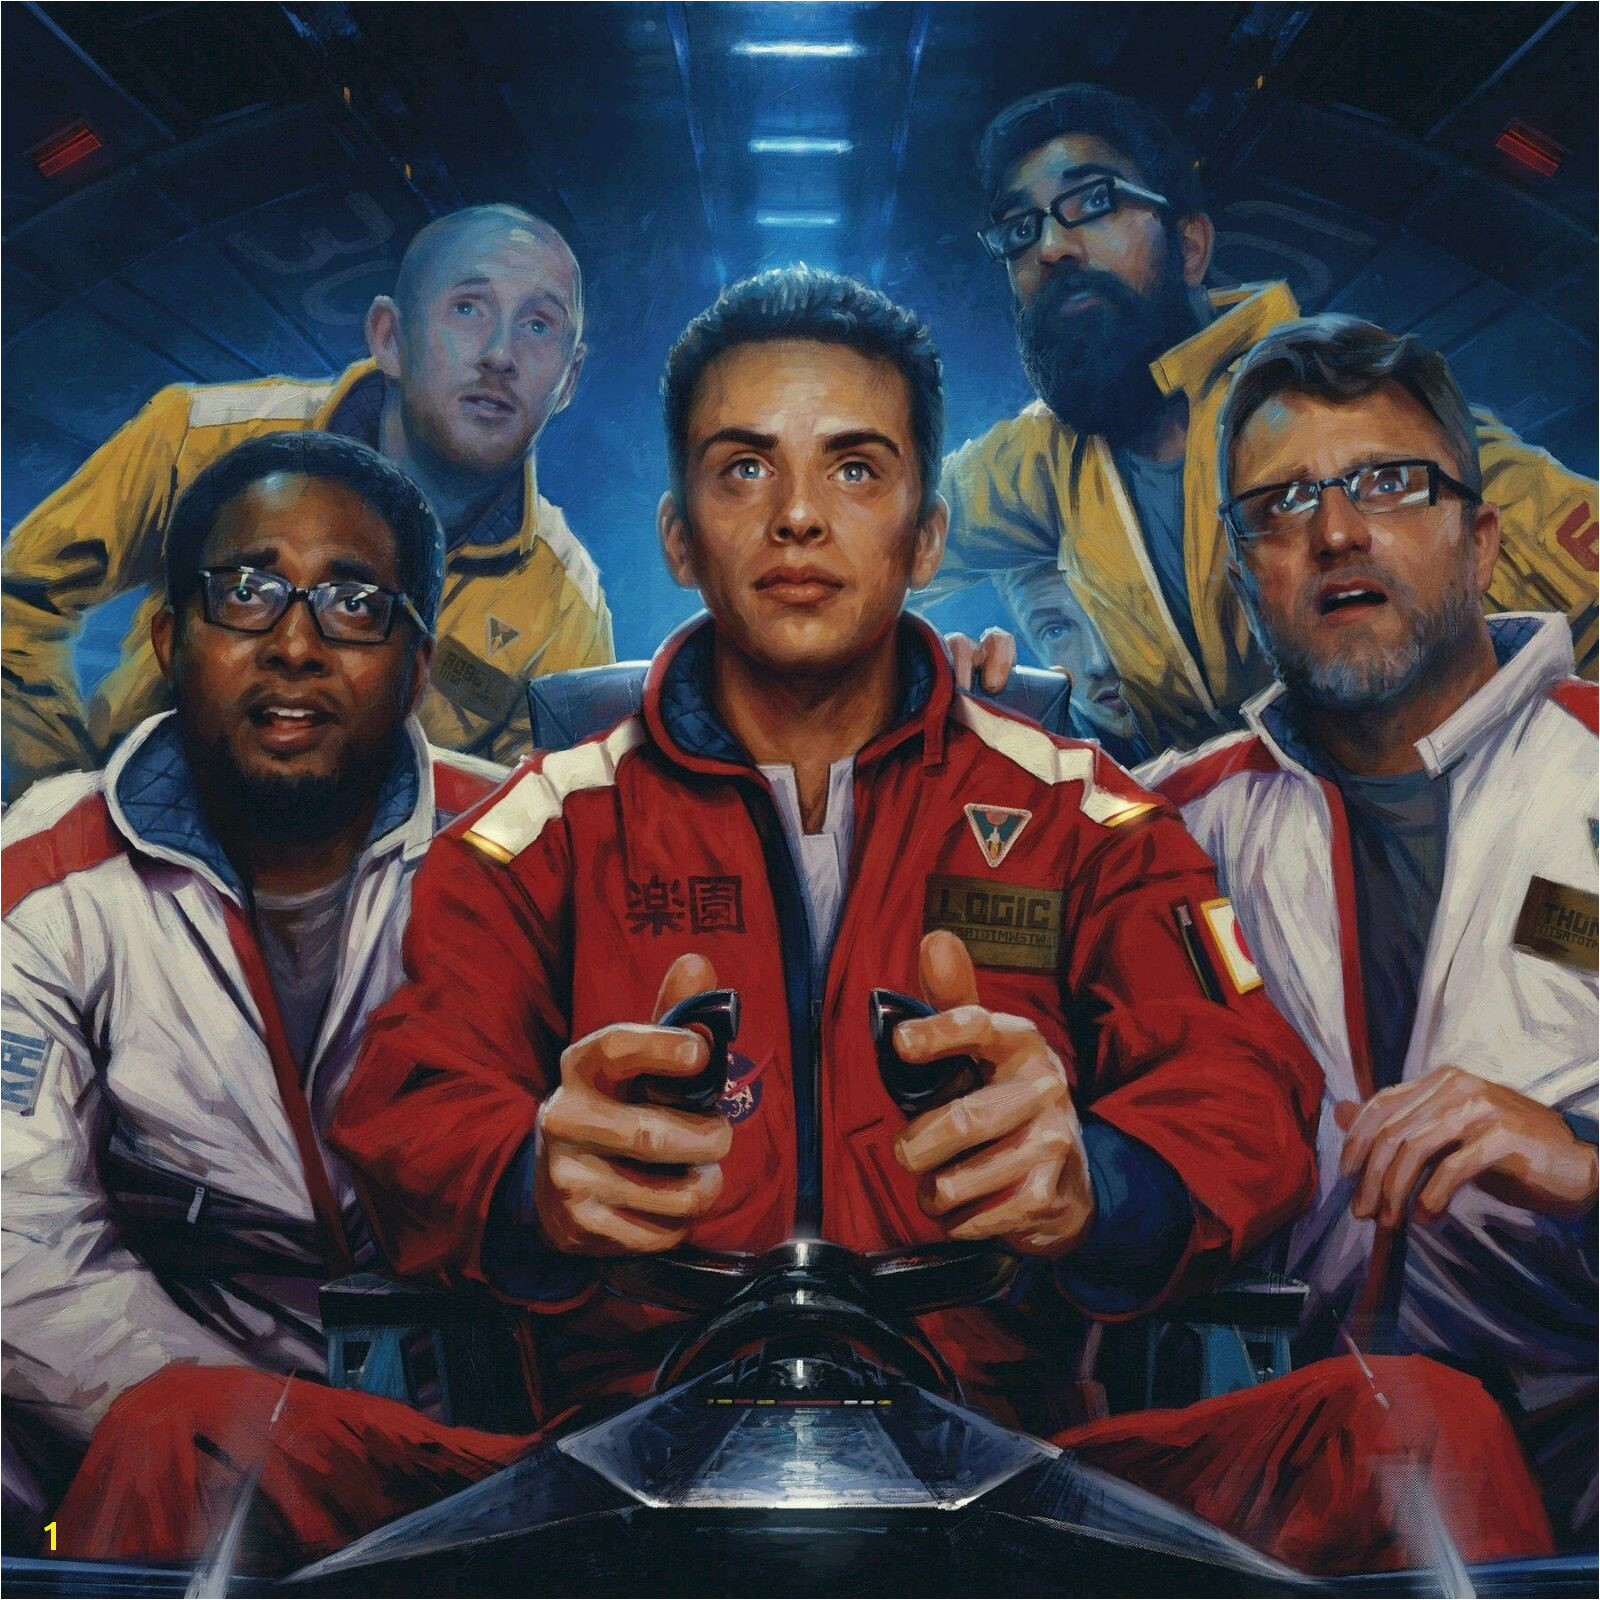 """$11 9 Logic The Incredible True Story Hip Hop Album Cover Art Poster 20""""20 24""""24 32""""32 ebay Collectibles"""